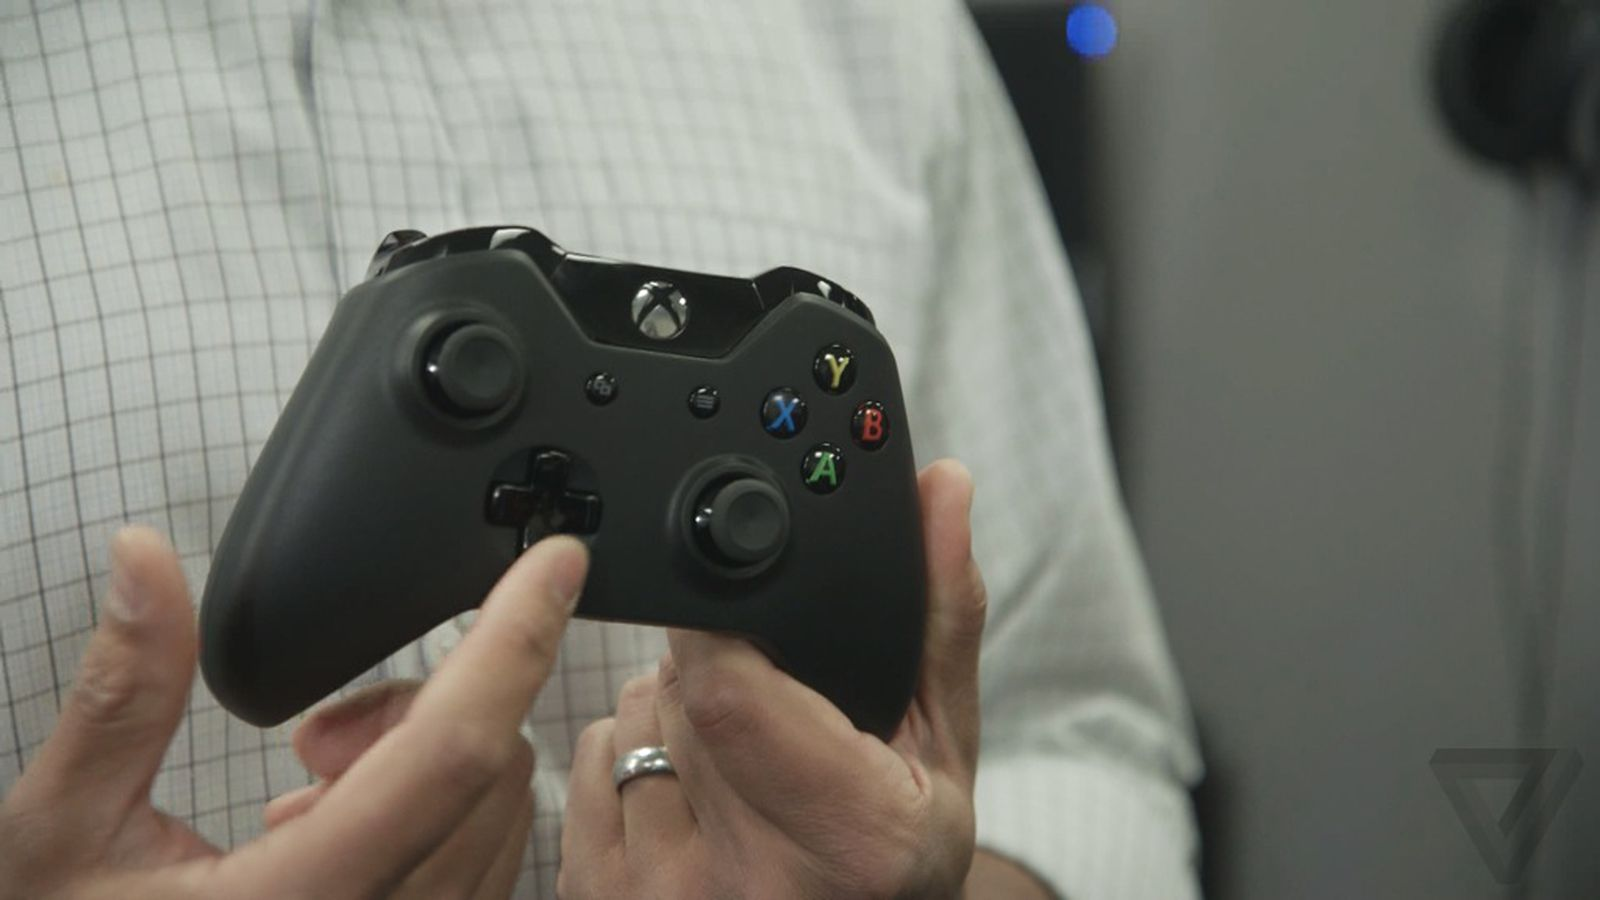 microsoft outsourcing the x box essay Microsoft canada, xbox essays: over 180,000 microsoft canada, xbox essays, microsoft canada, xbox term papers, microsoft canada, xbox research paper, book reports.